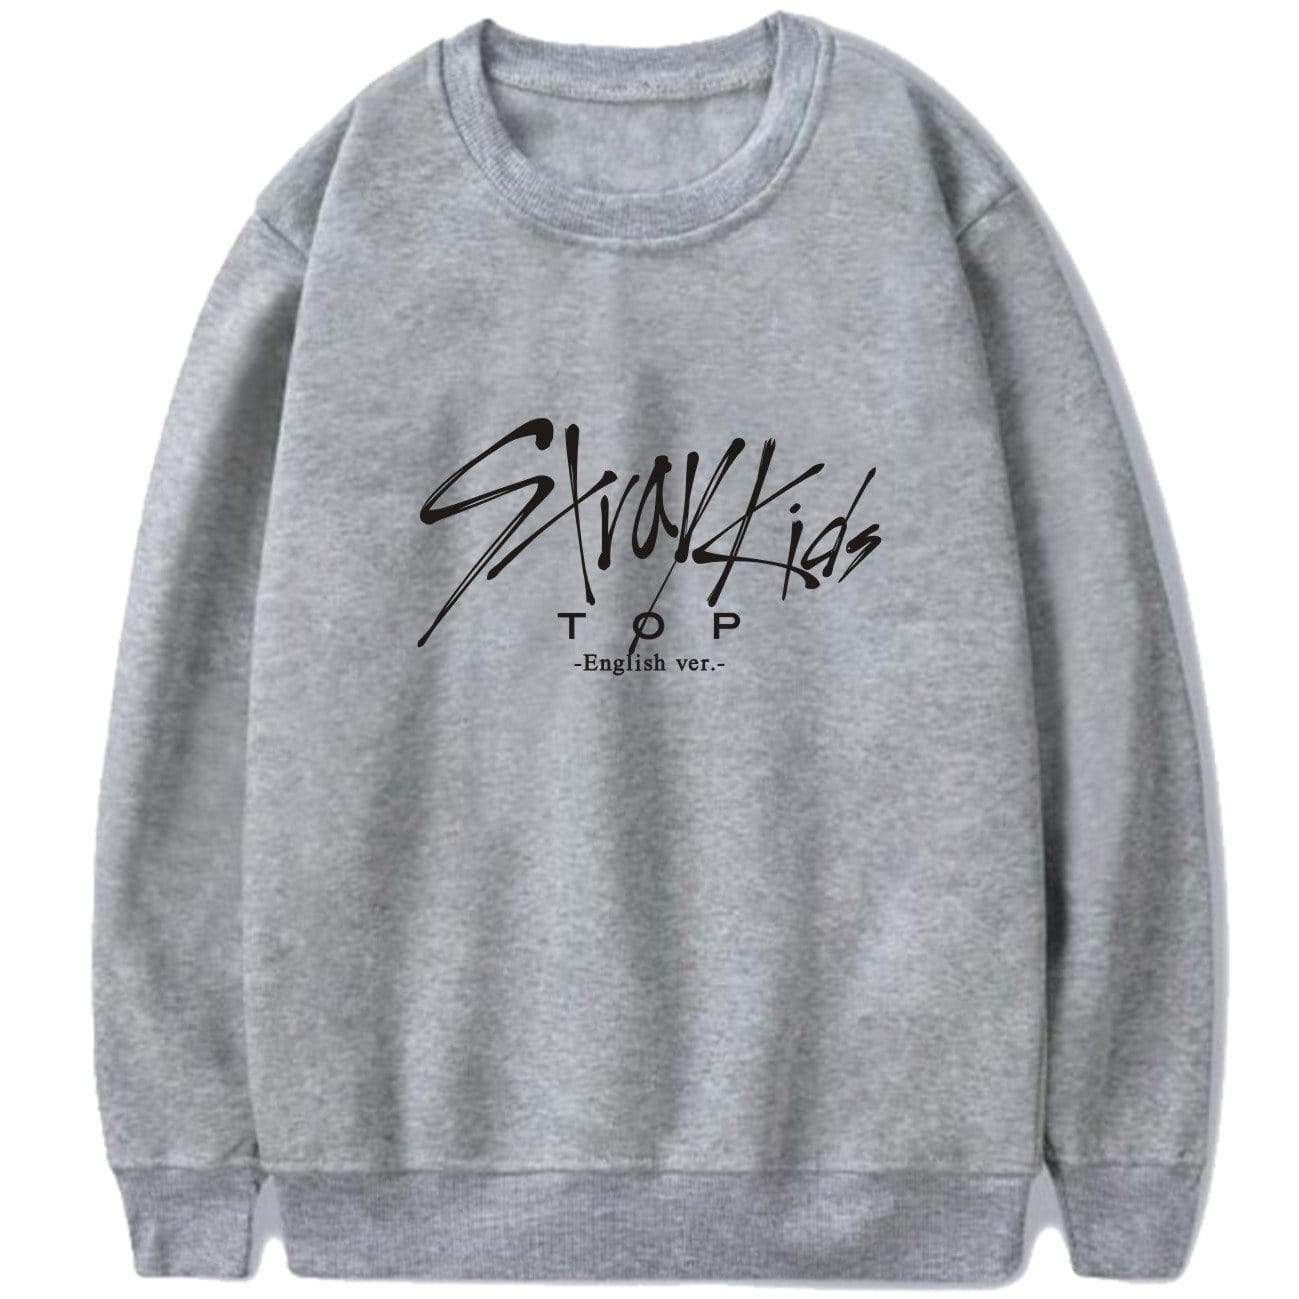 Stray Kids TOP English ver Printed Sweatshirt